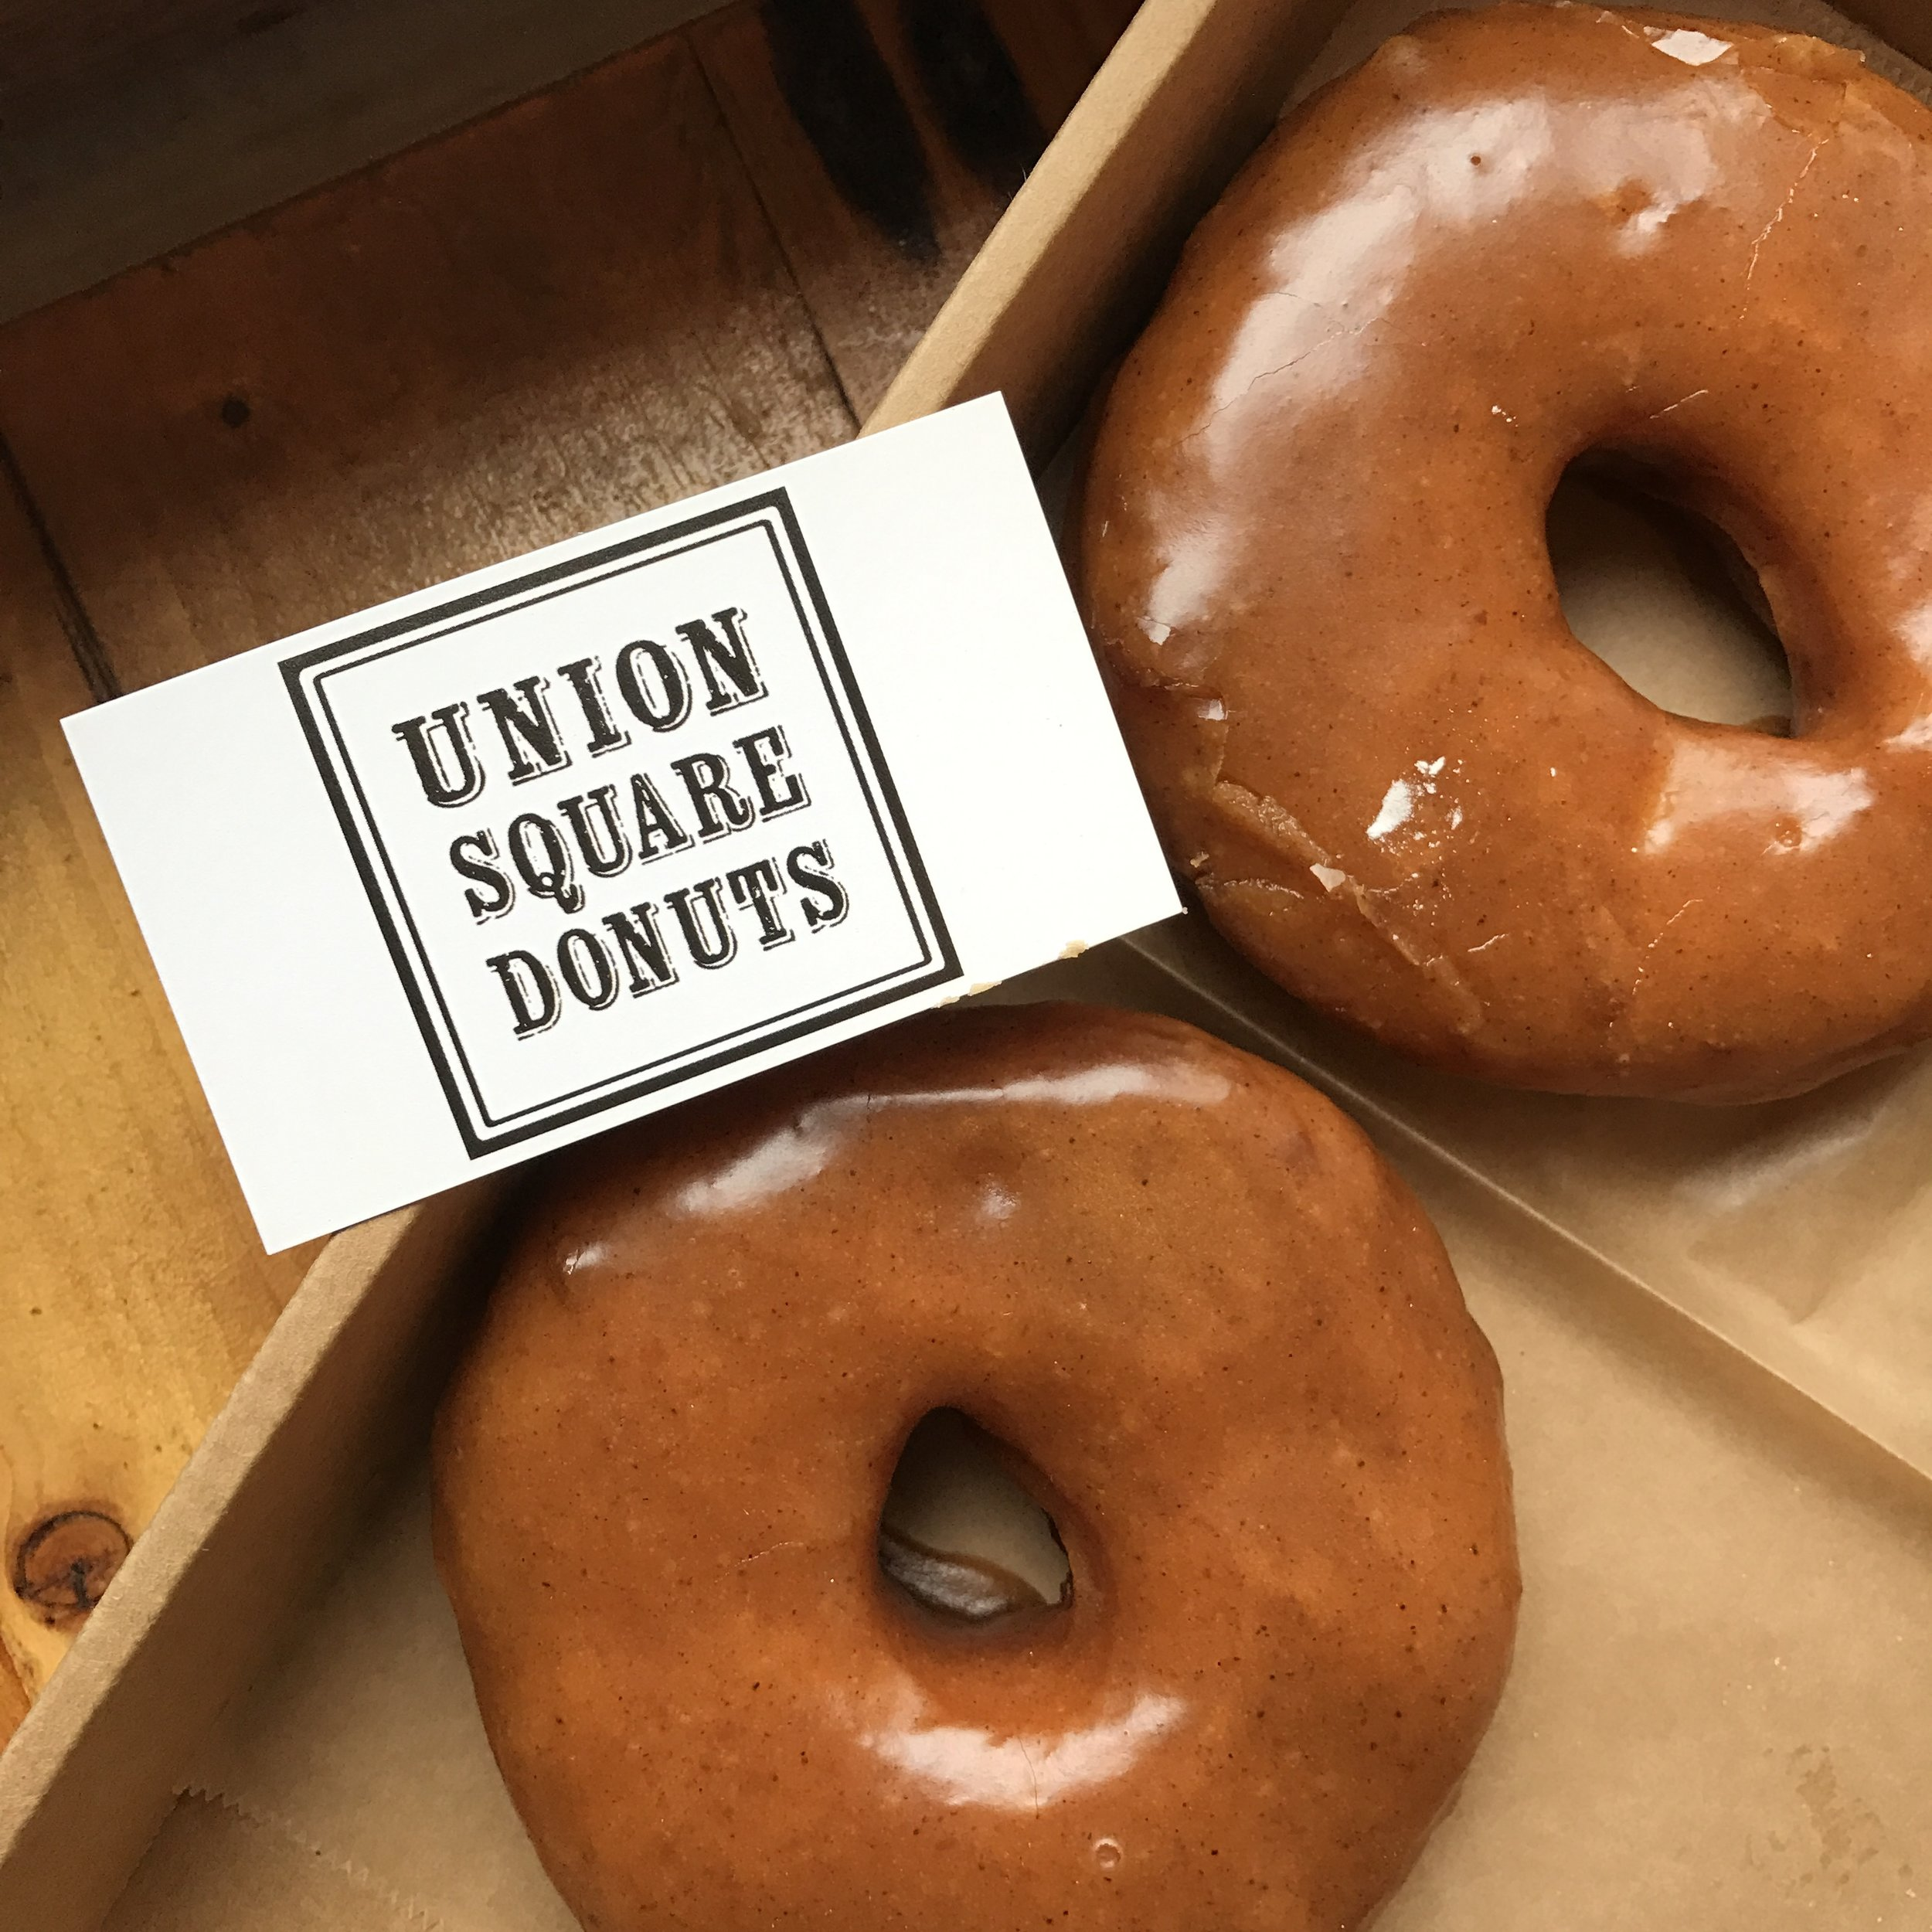 You don't have to be vegan to love   Union Square Donut  's Vegan Pumpkin Spice donut. Find these at their Somerville shop in Union Square, and they also sell donuts at the Boston Public Market.